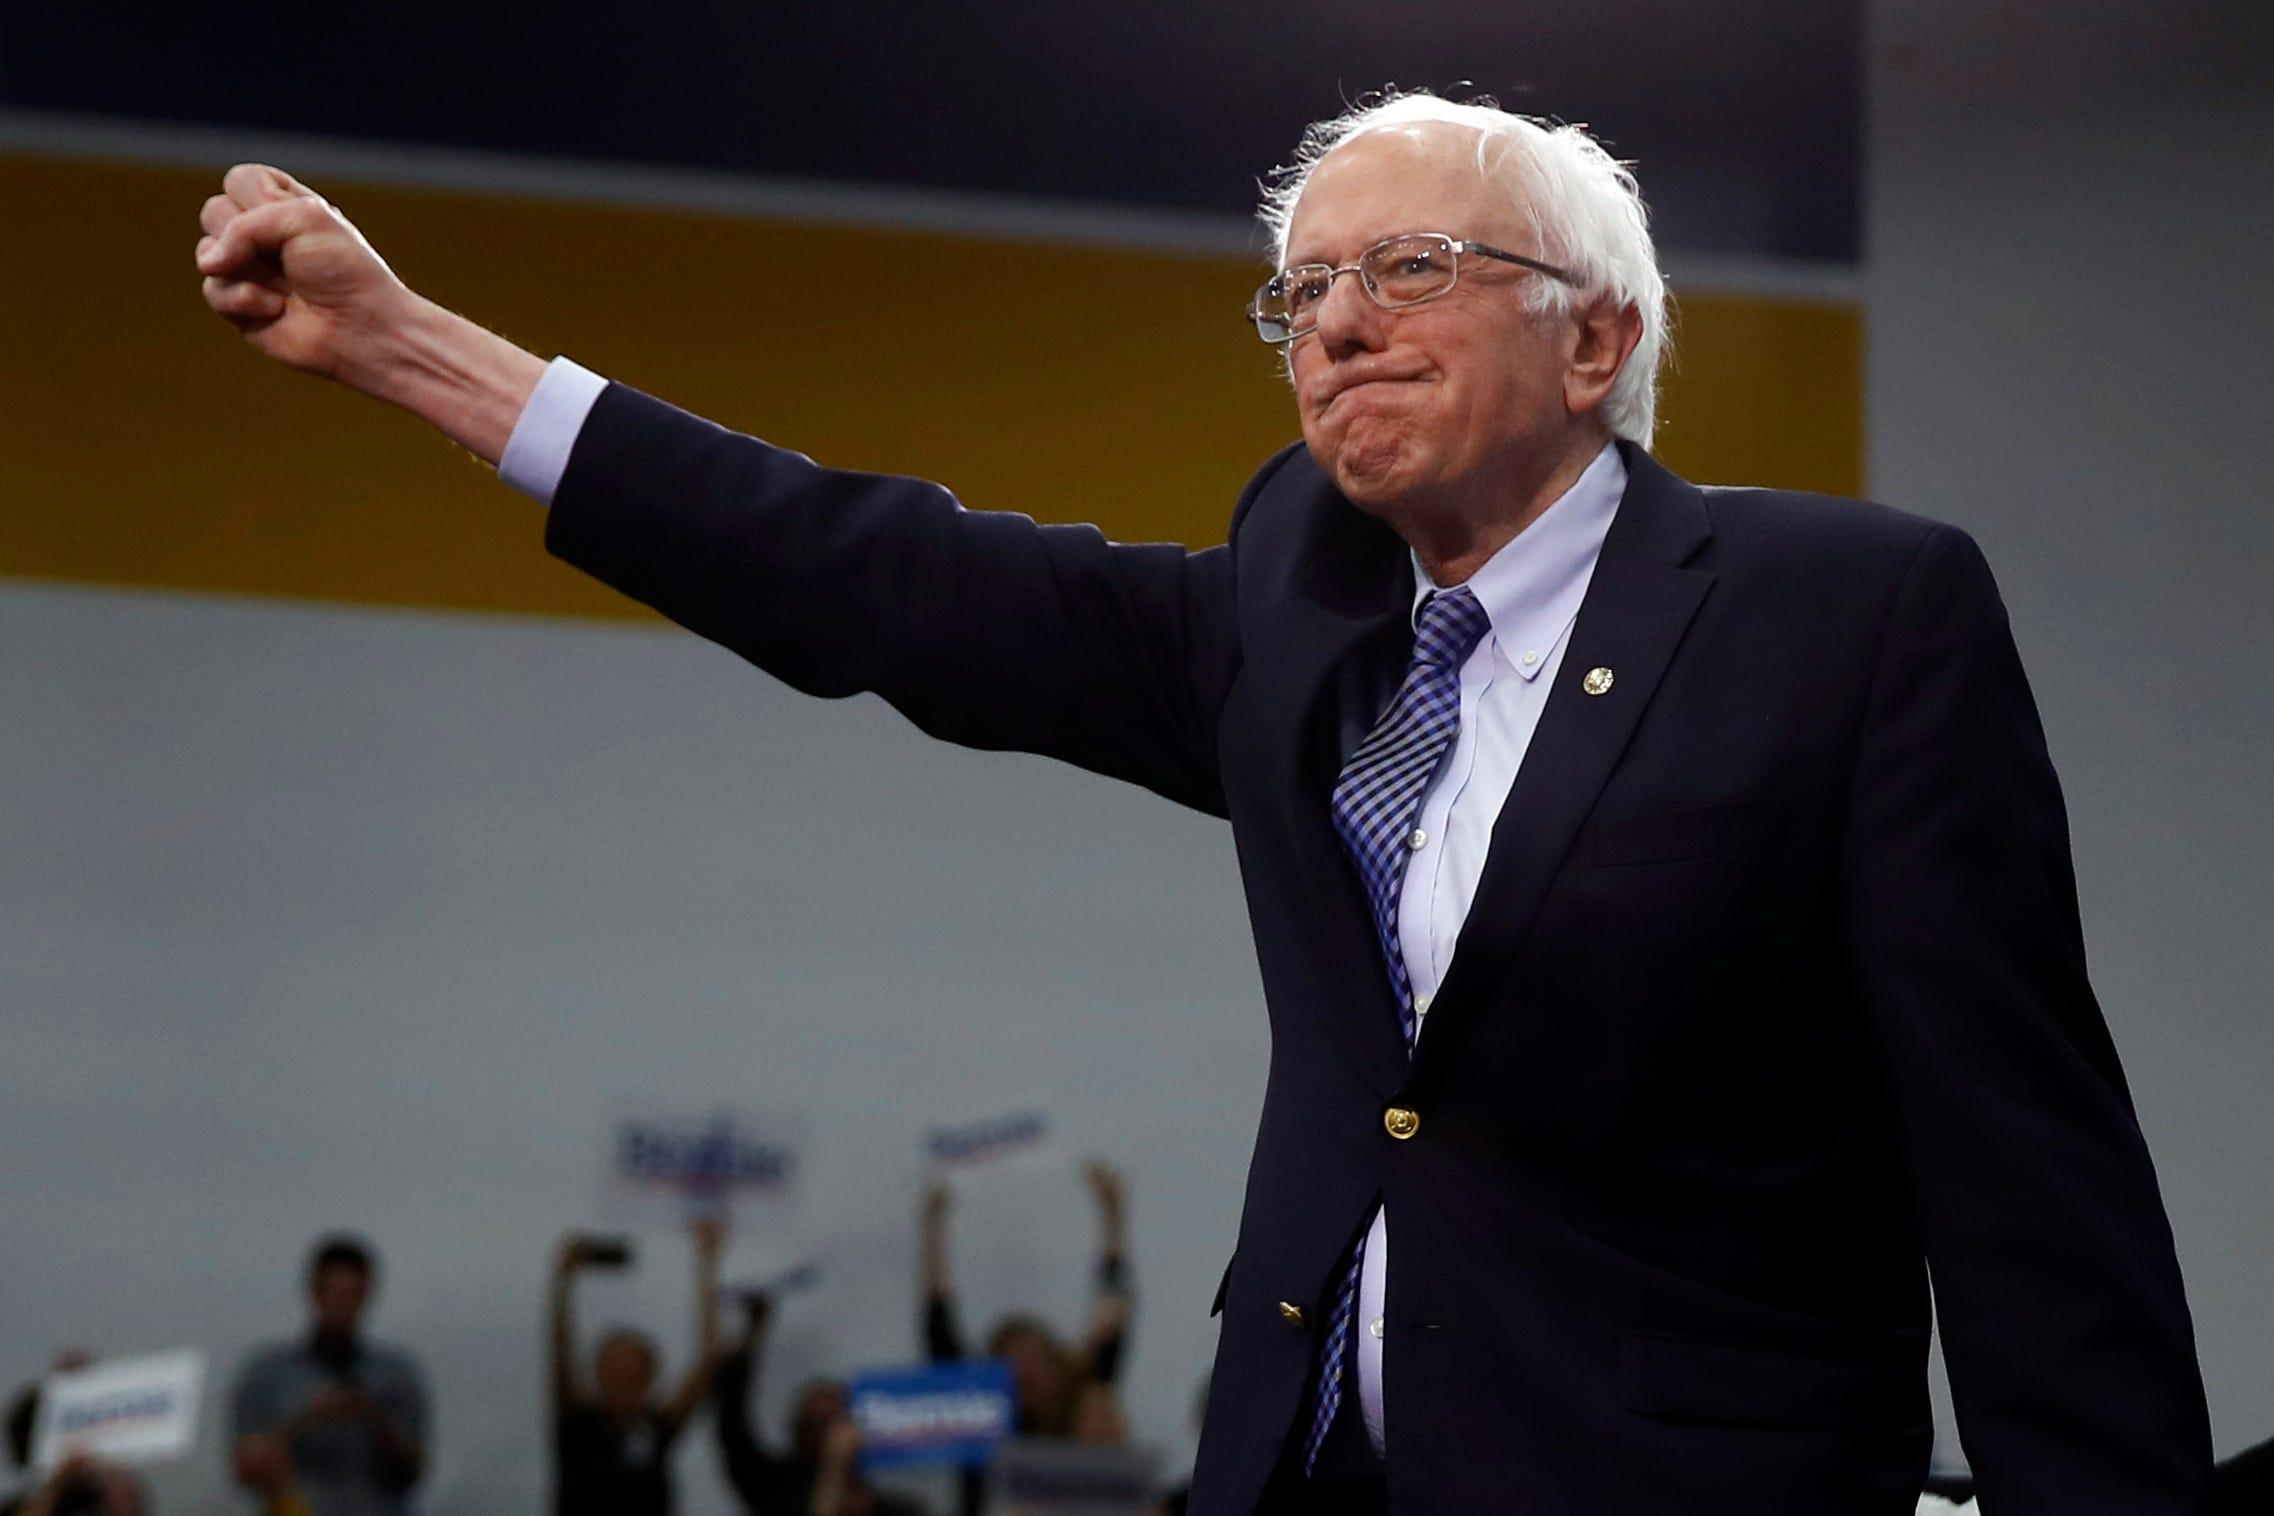 USA TODAY/Ipsos poll: For voters, Bernie Sanders outranks other Democrats – and Trump – on values, empathy